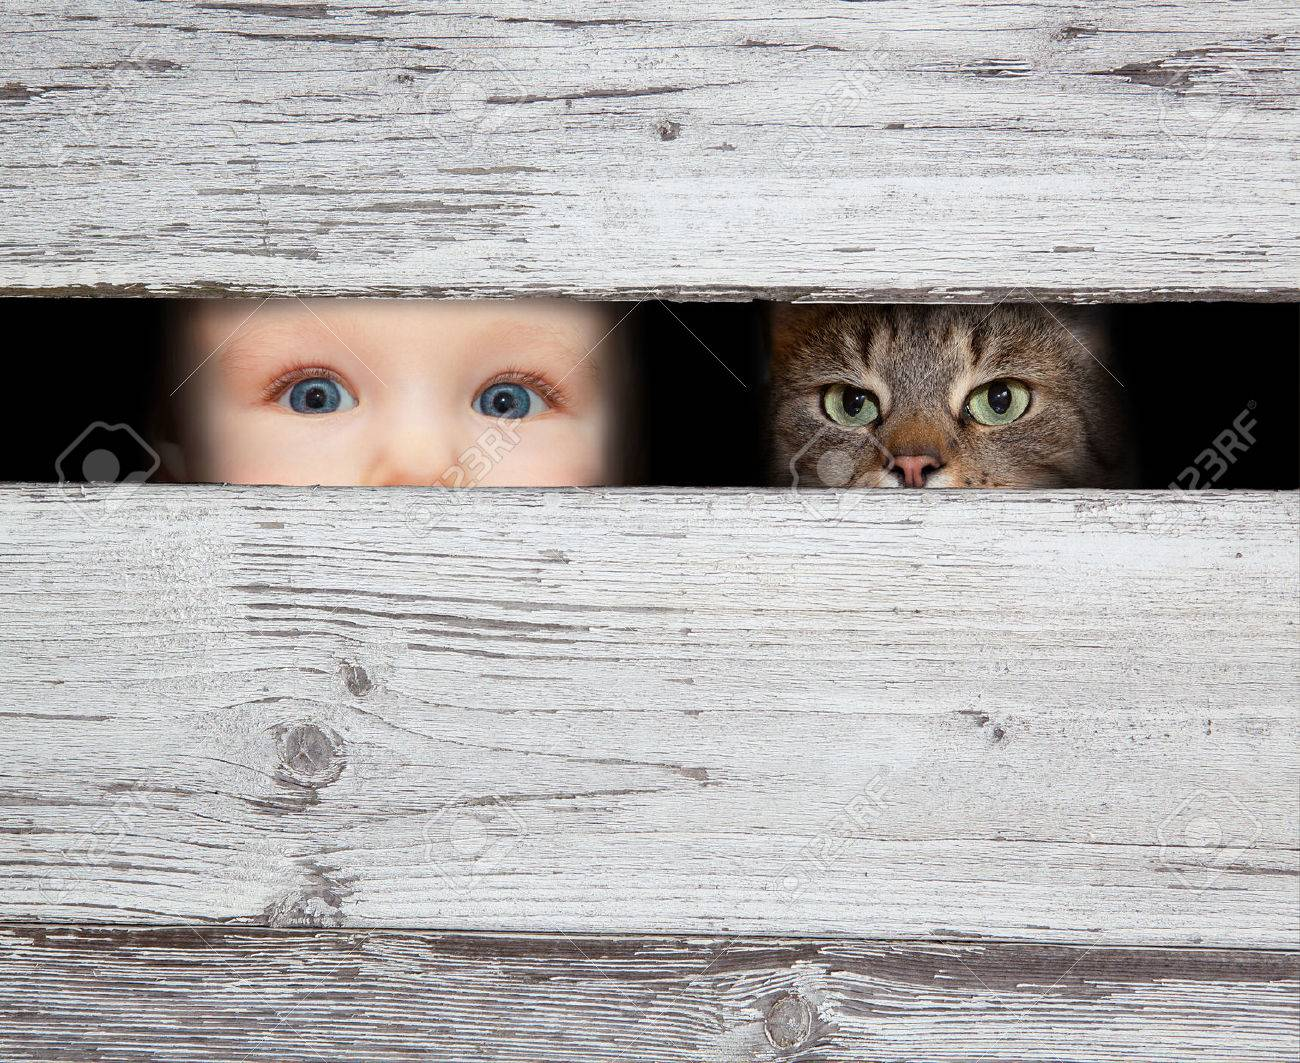 little boy and the cat looking between the gap of the boards Stock Photo - 25887195